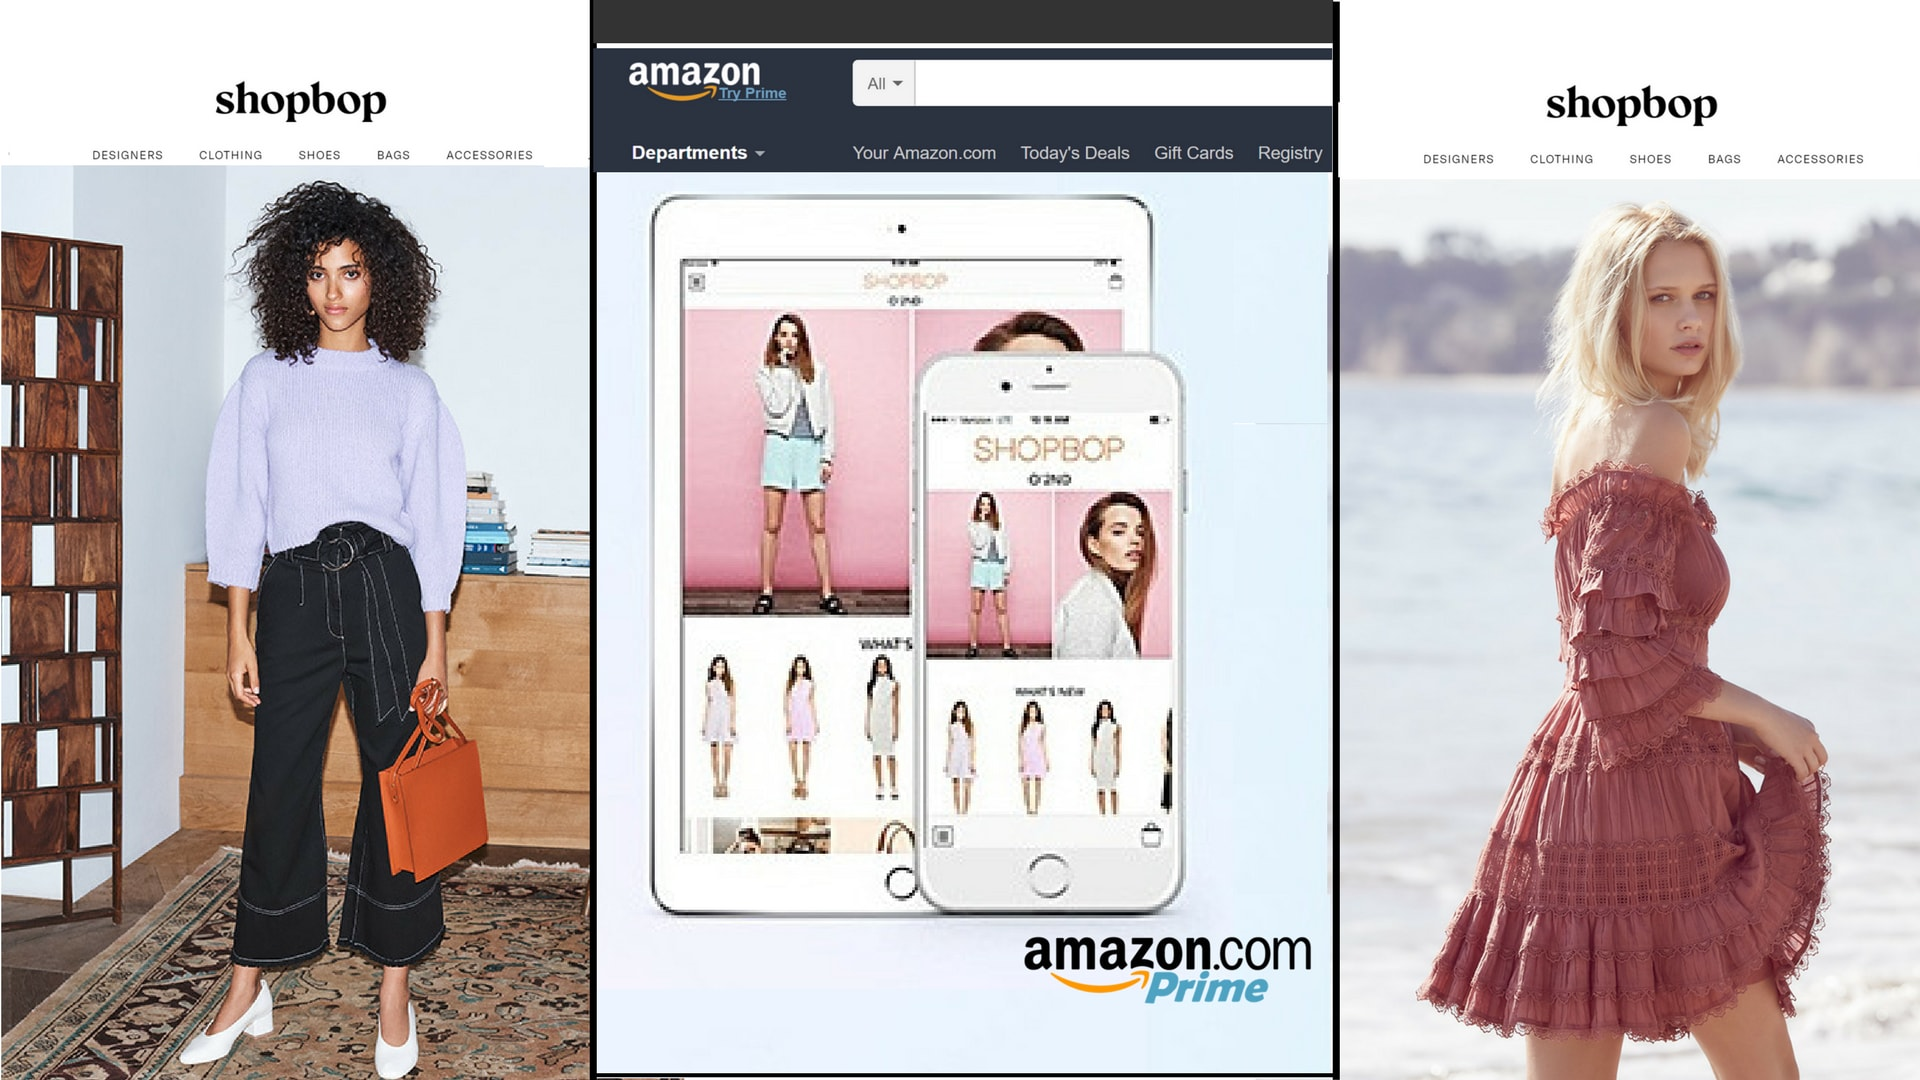 Amazon-Ecommerce-Investment-Bankers